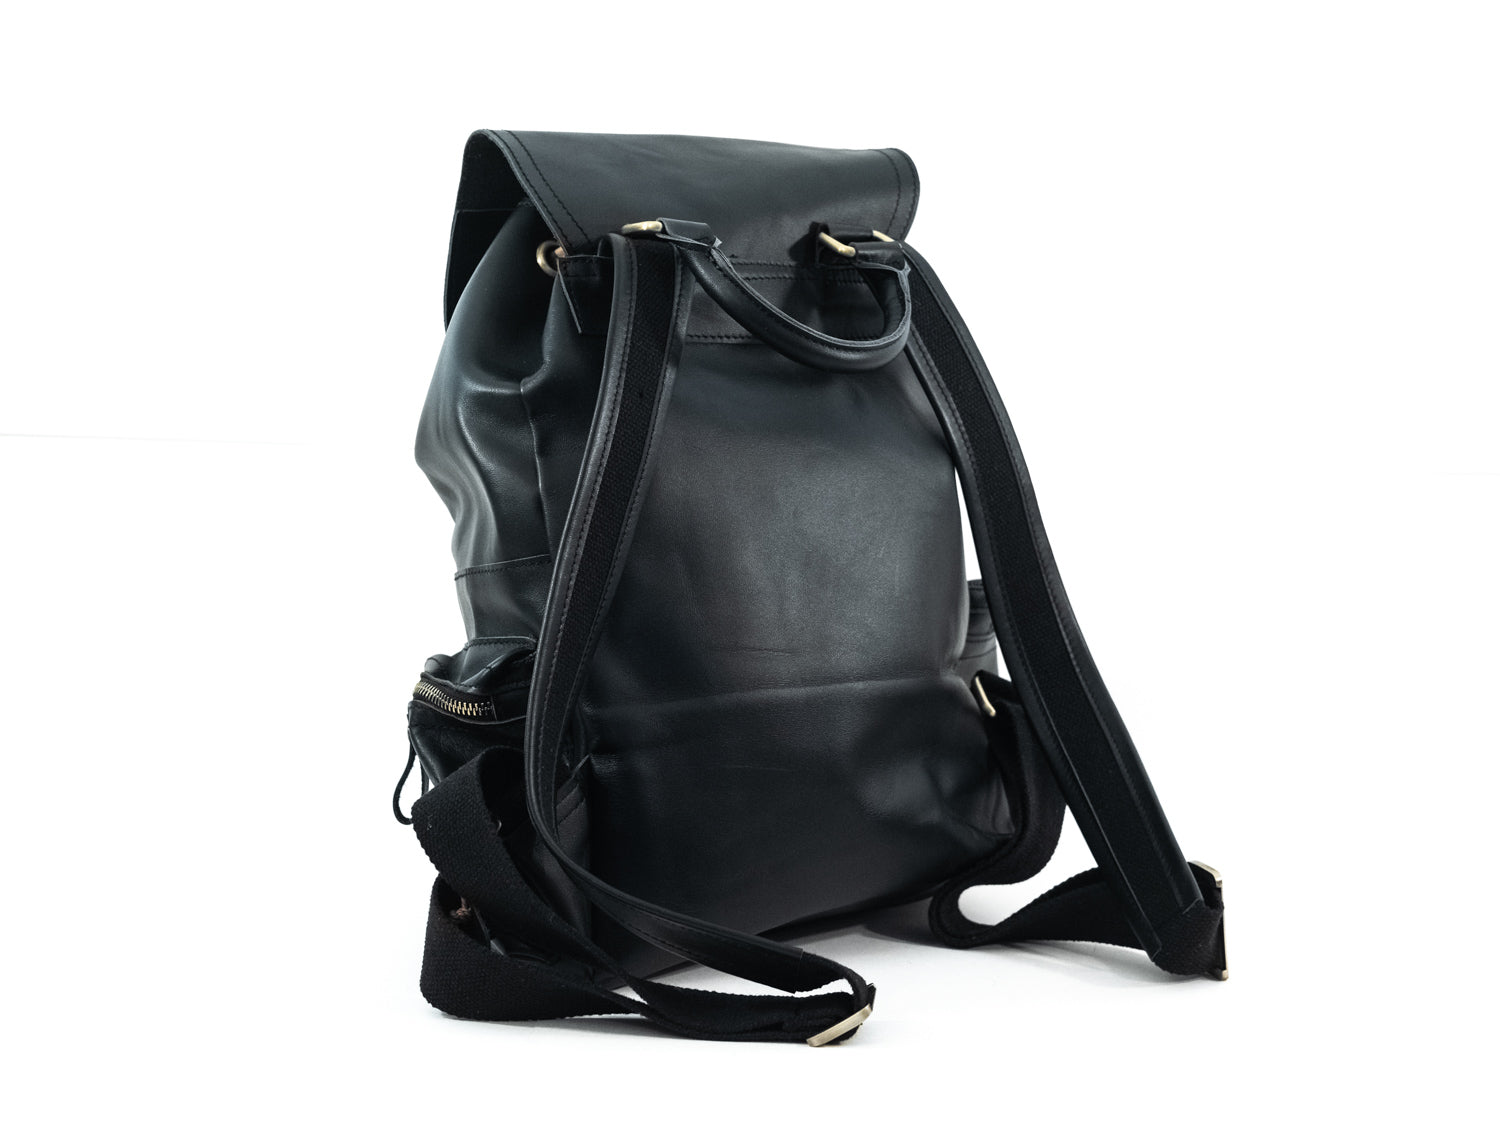 The Bianca Backpack